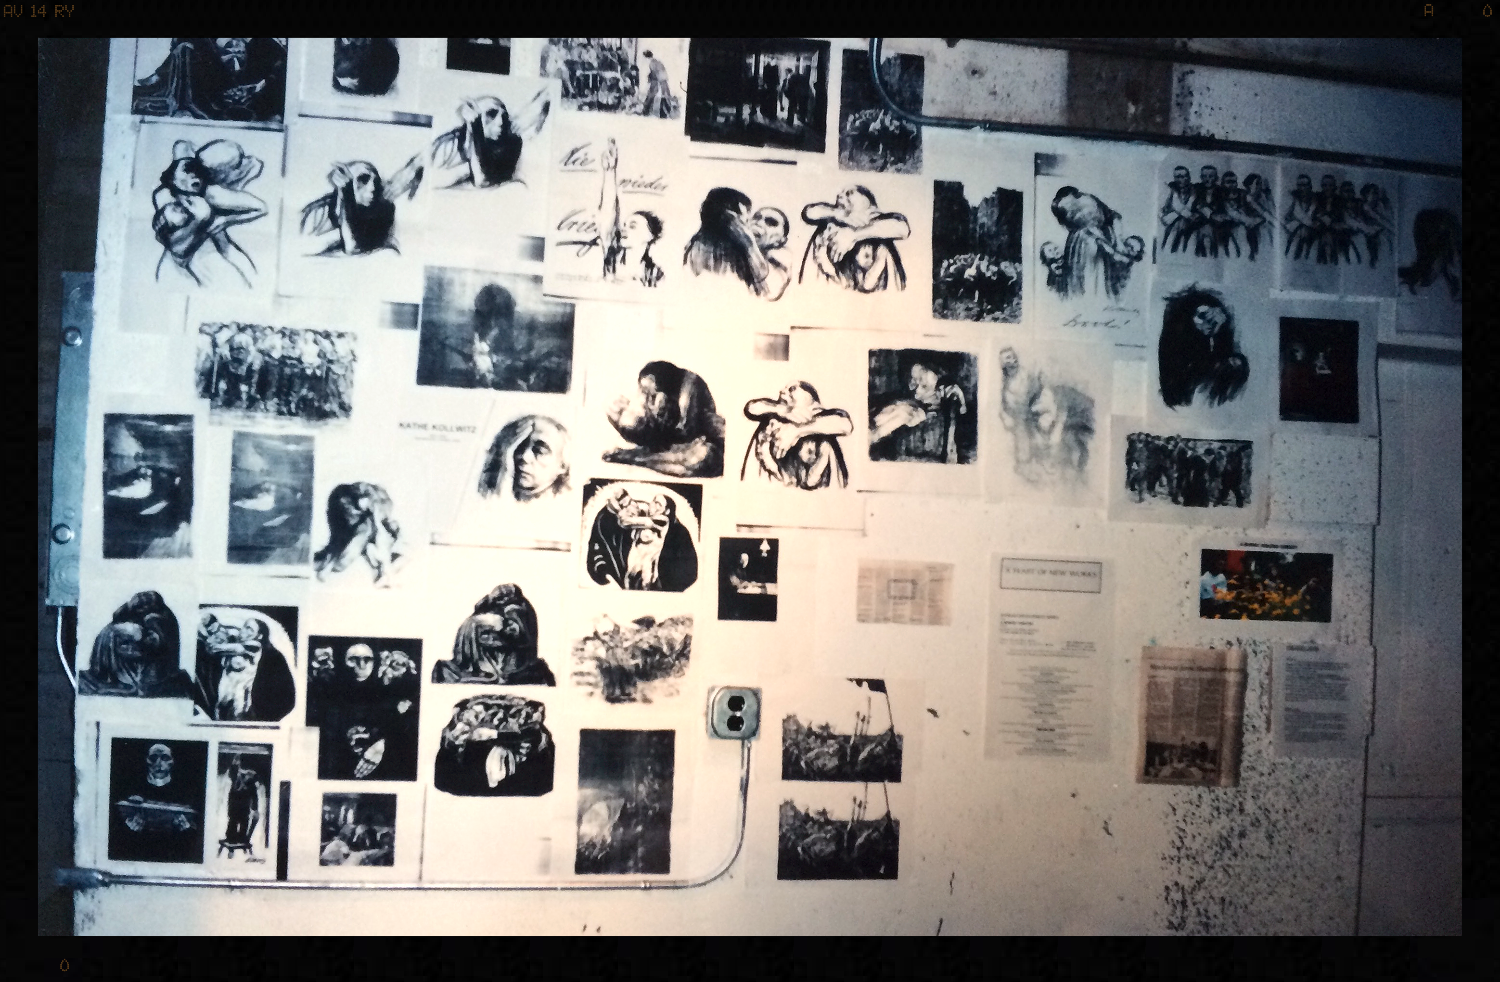 THE KOLLWITZ PROJECT art wall